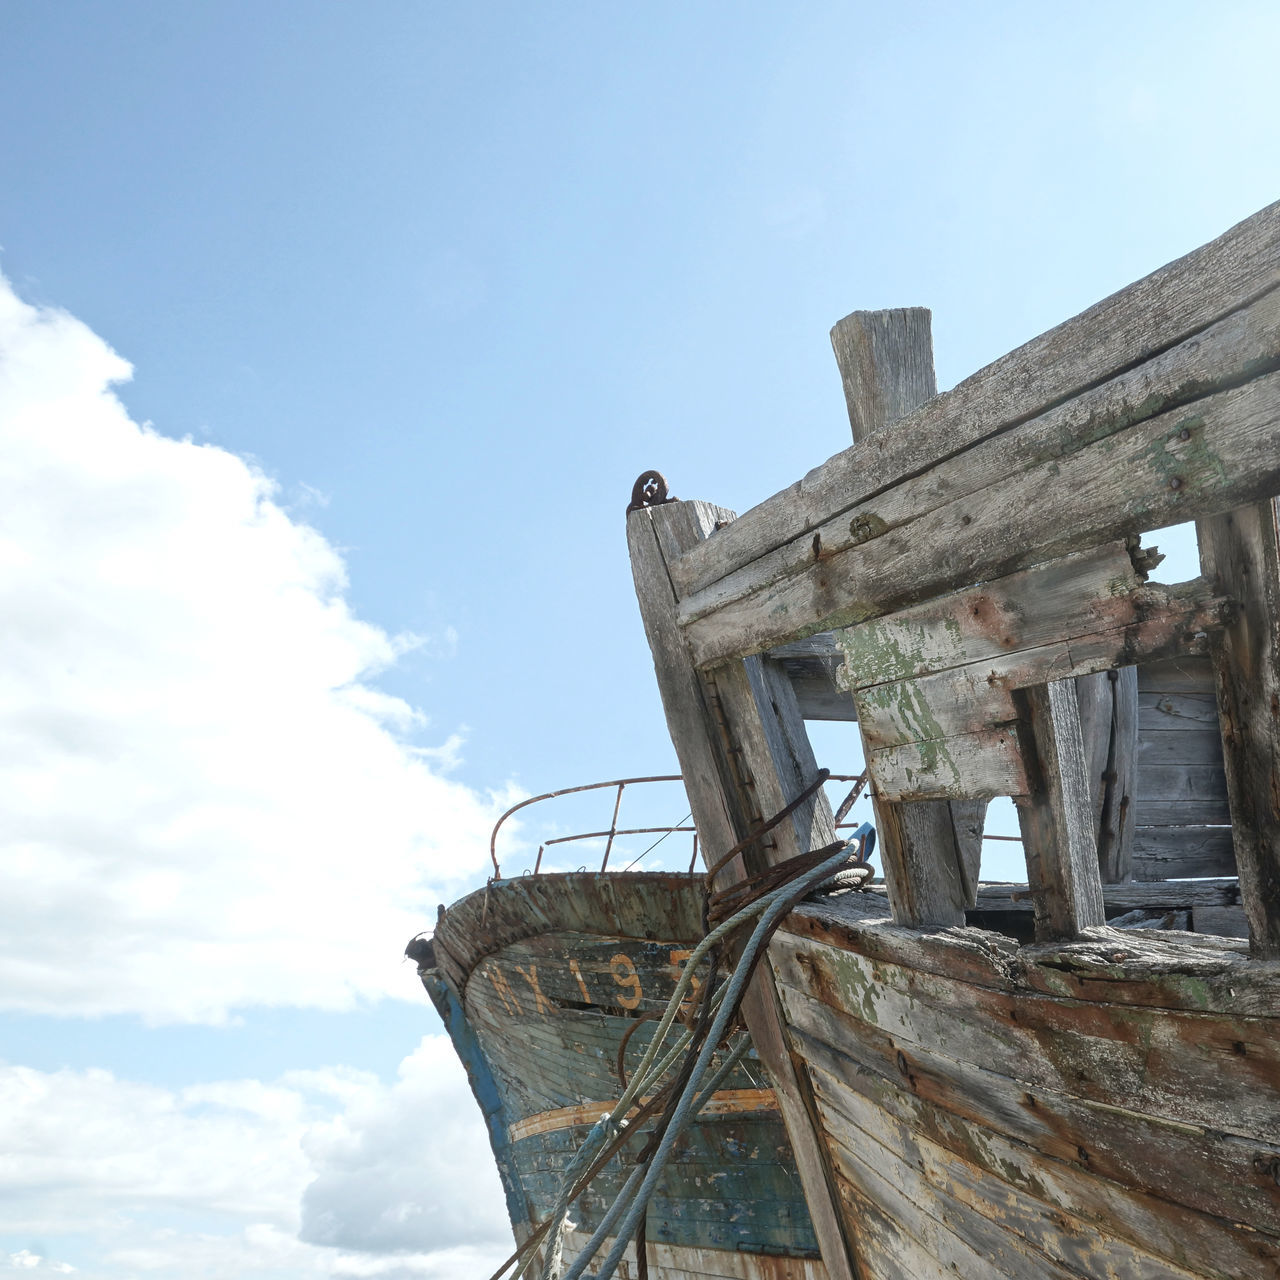 Shipwrecks in Camaret-sur-Mer, Brittany Abandoned Bad Condition Bow Brittany Camaret-sur-Mer Cloud - Sky Damaged Day Destruction Fishing Boat Fishing Village France History Low Angle View Maritime Maritime Photography No People Obsolete Outdoors Run-down Ship Shipwreck Sky Summertime Sunny